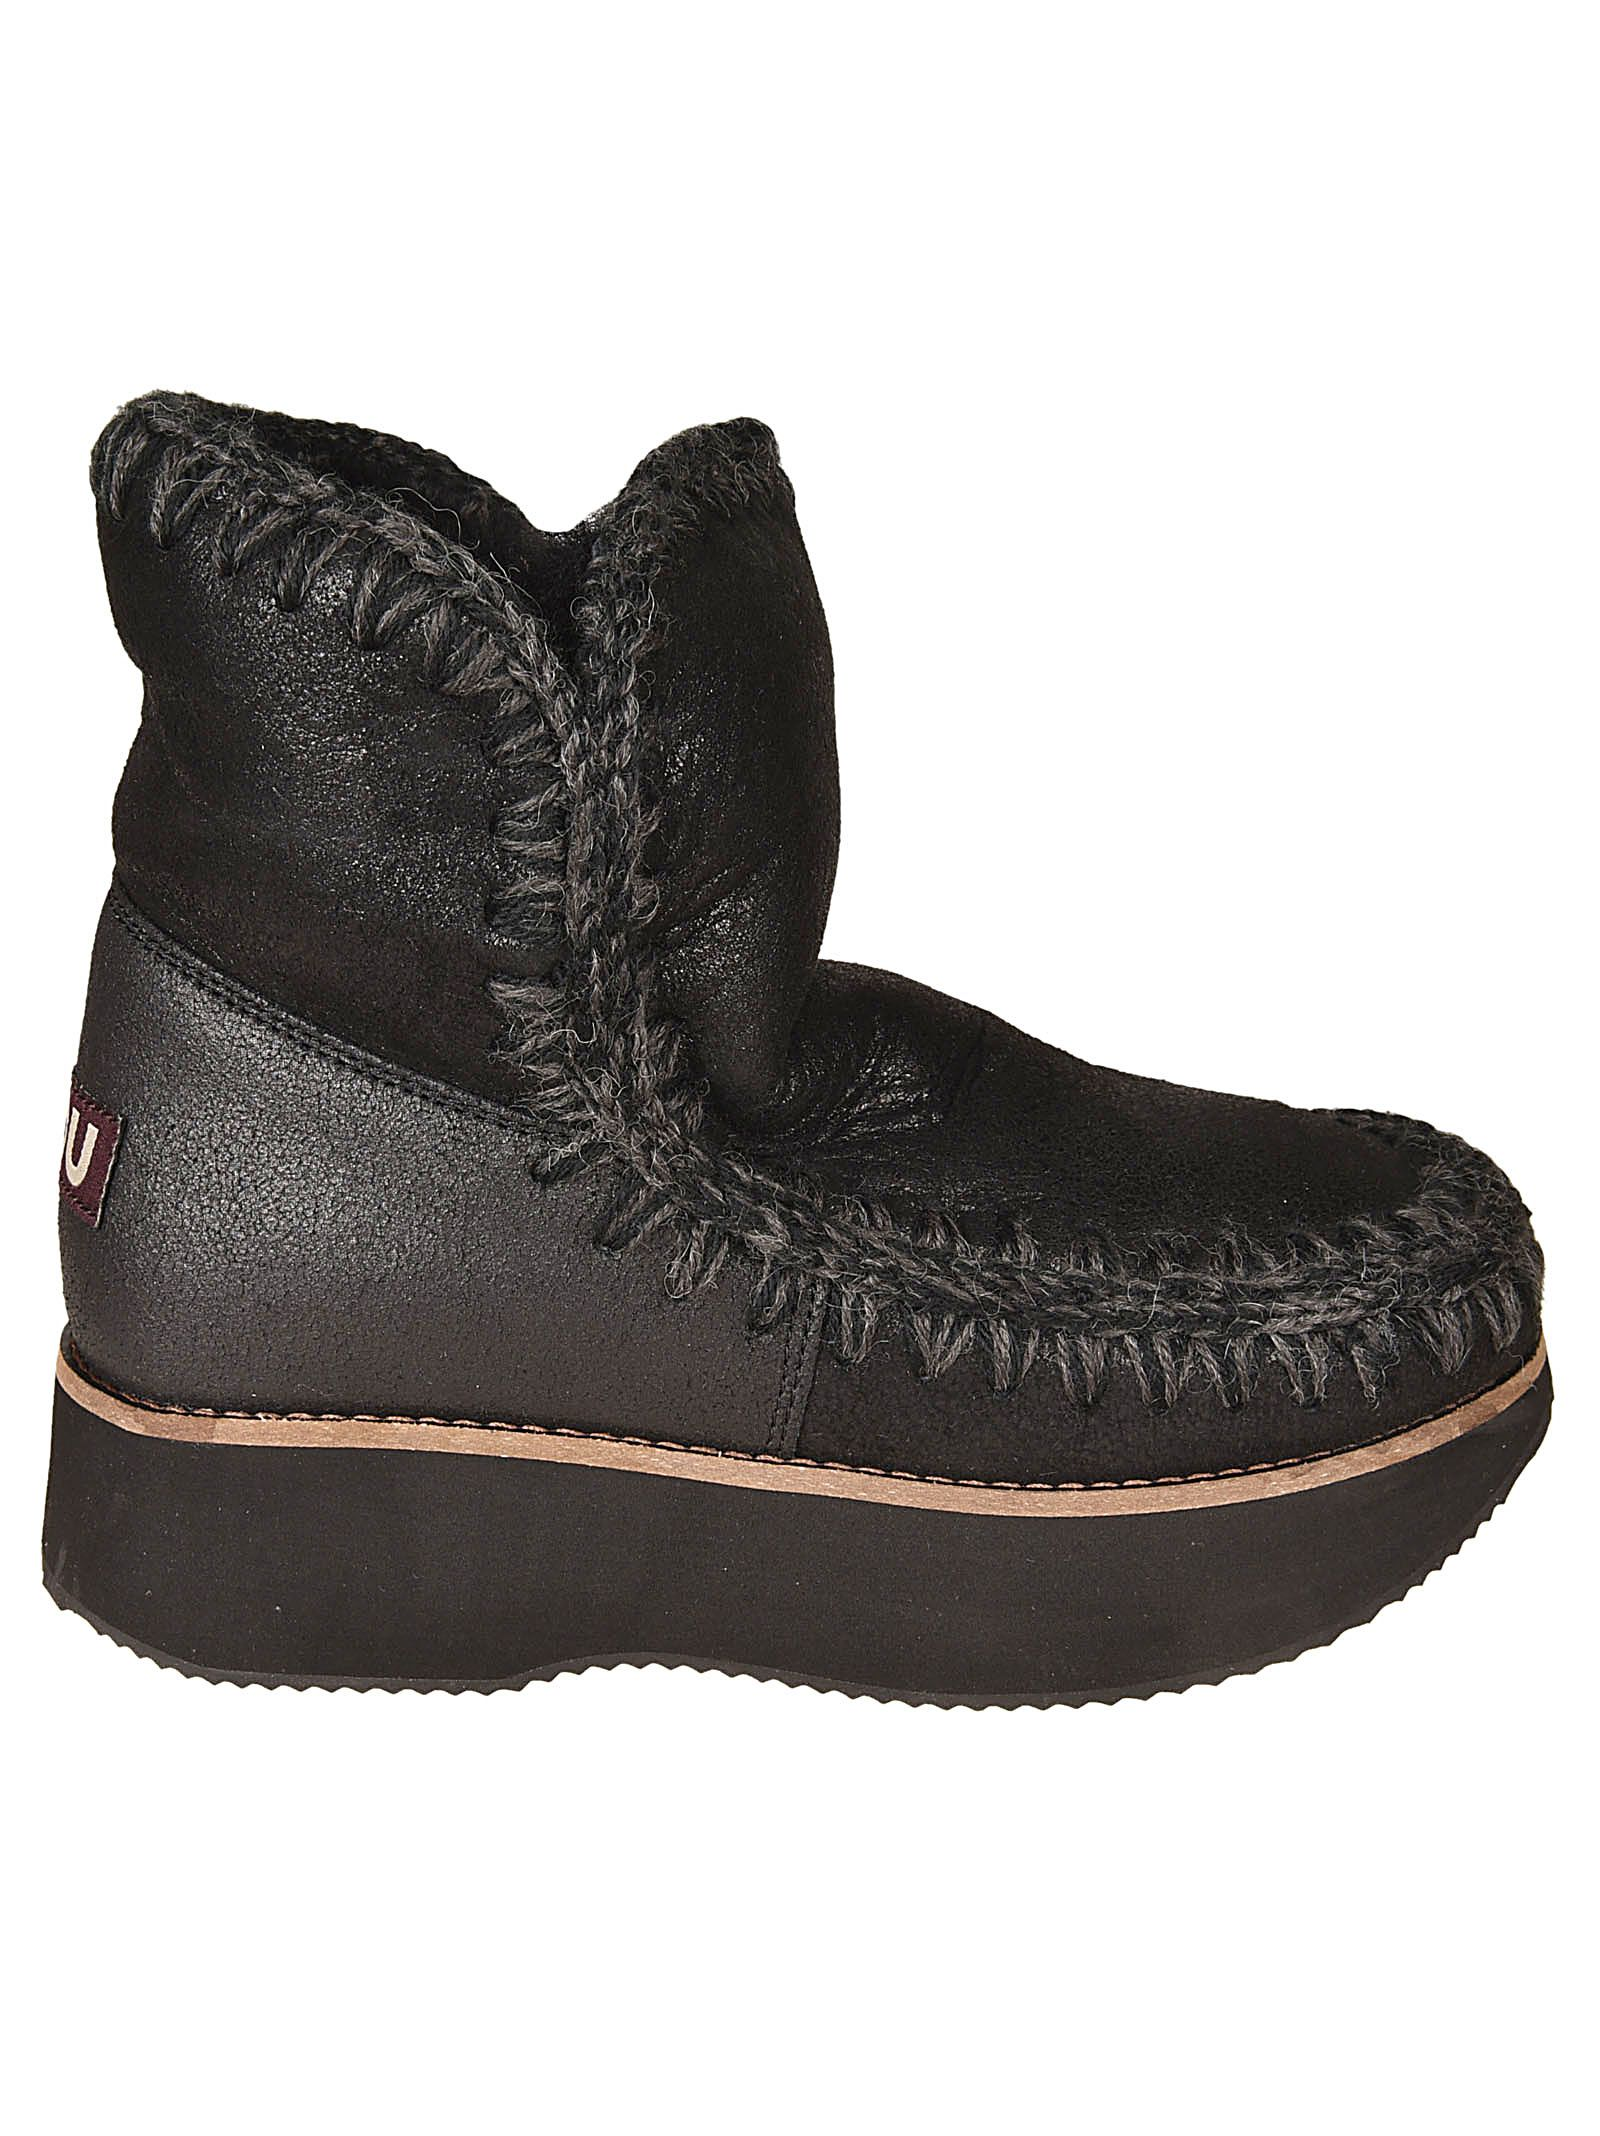 Mou Stitched Boots